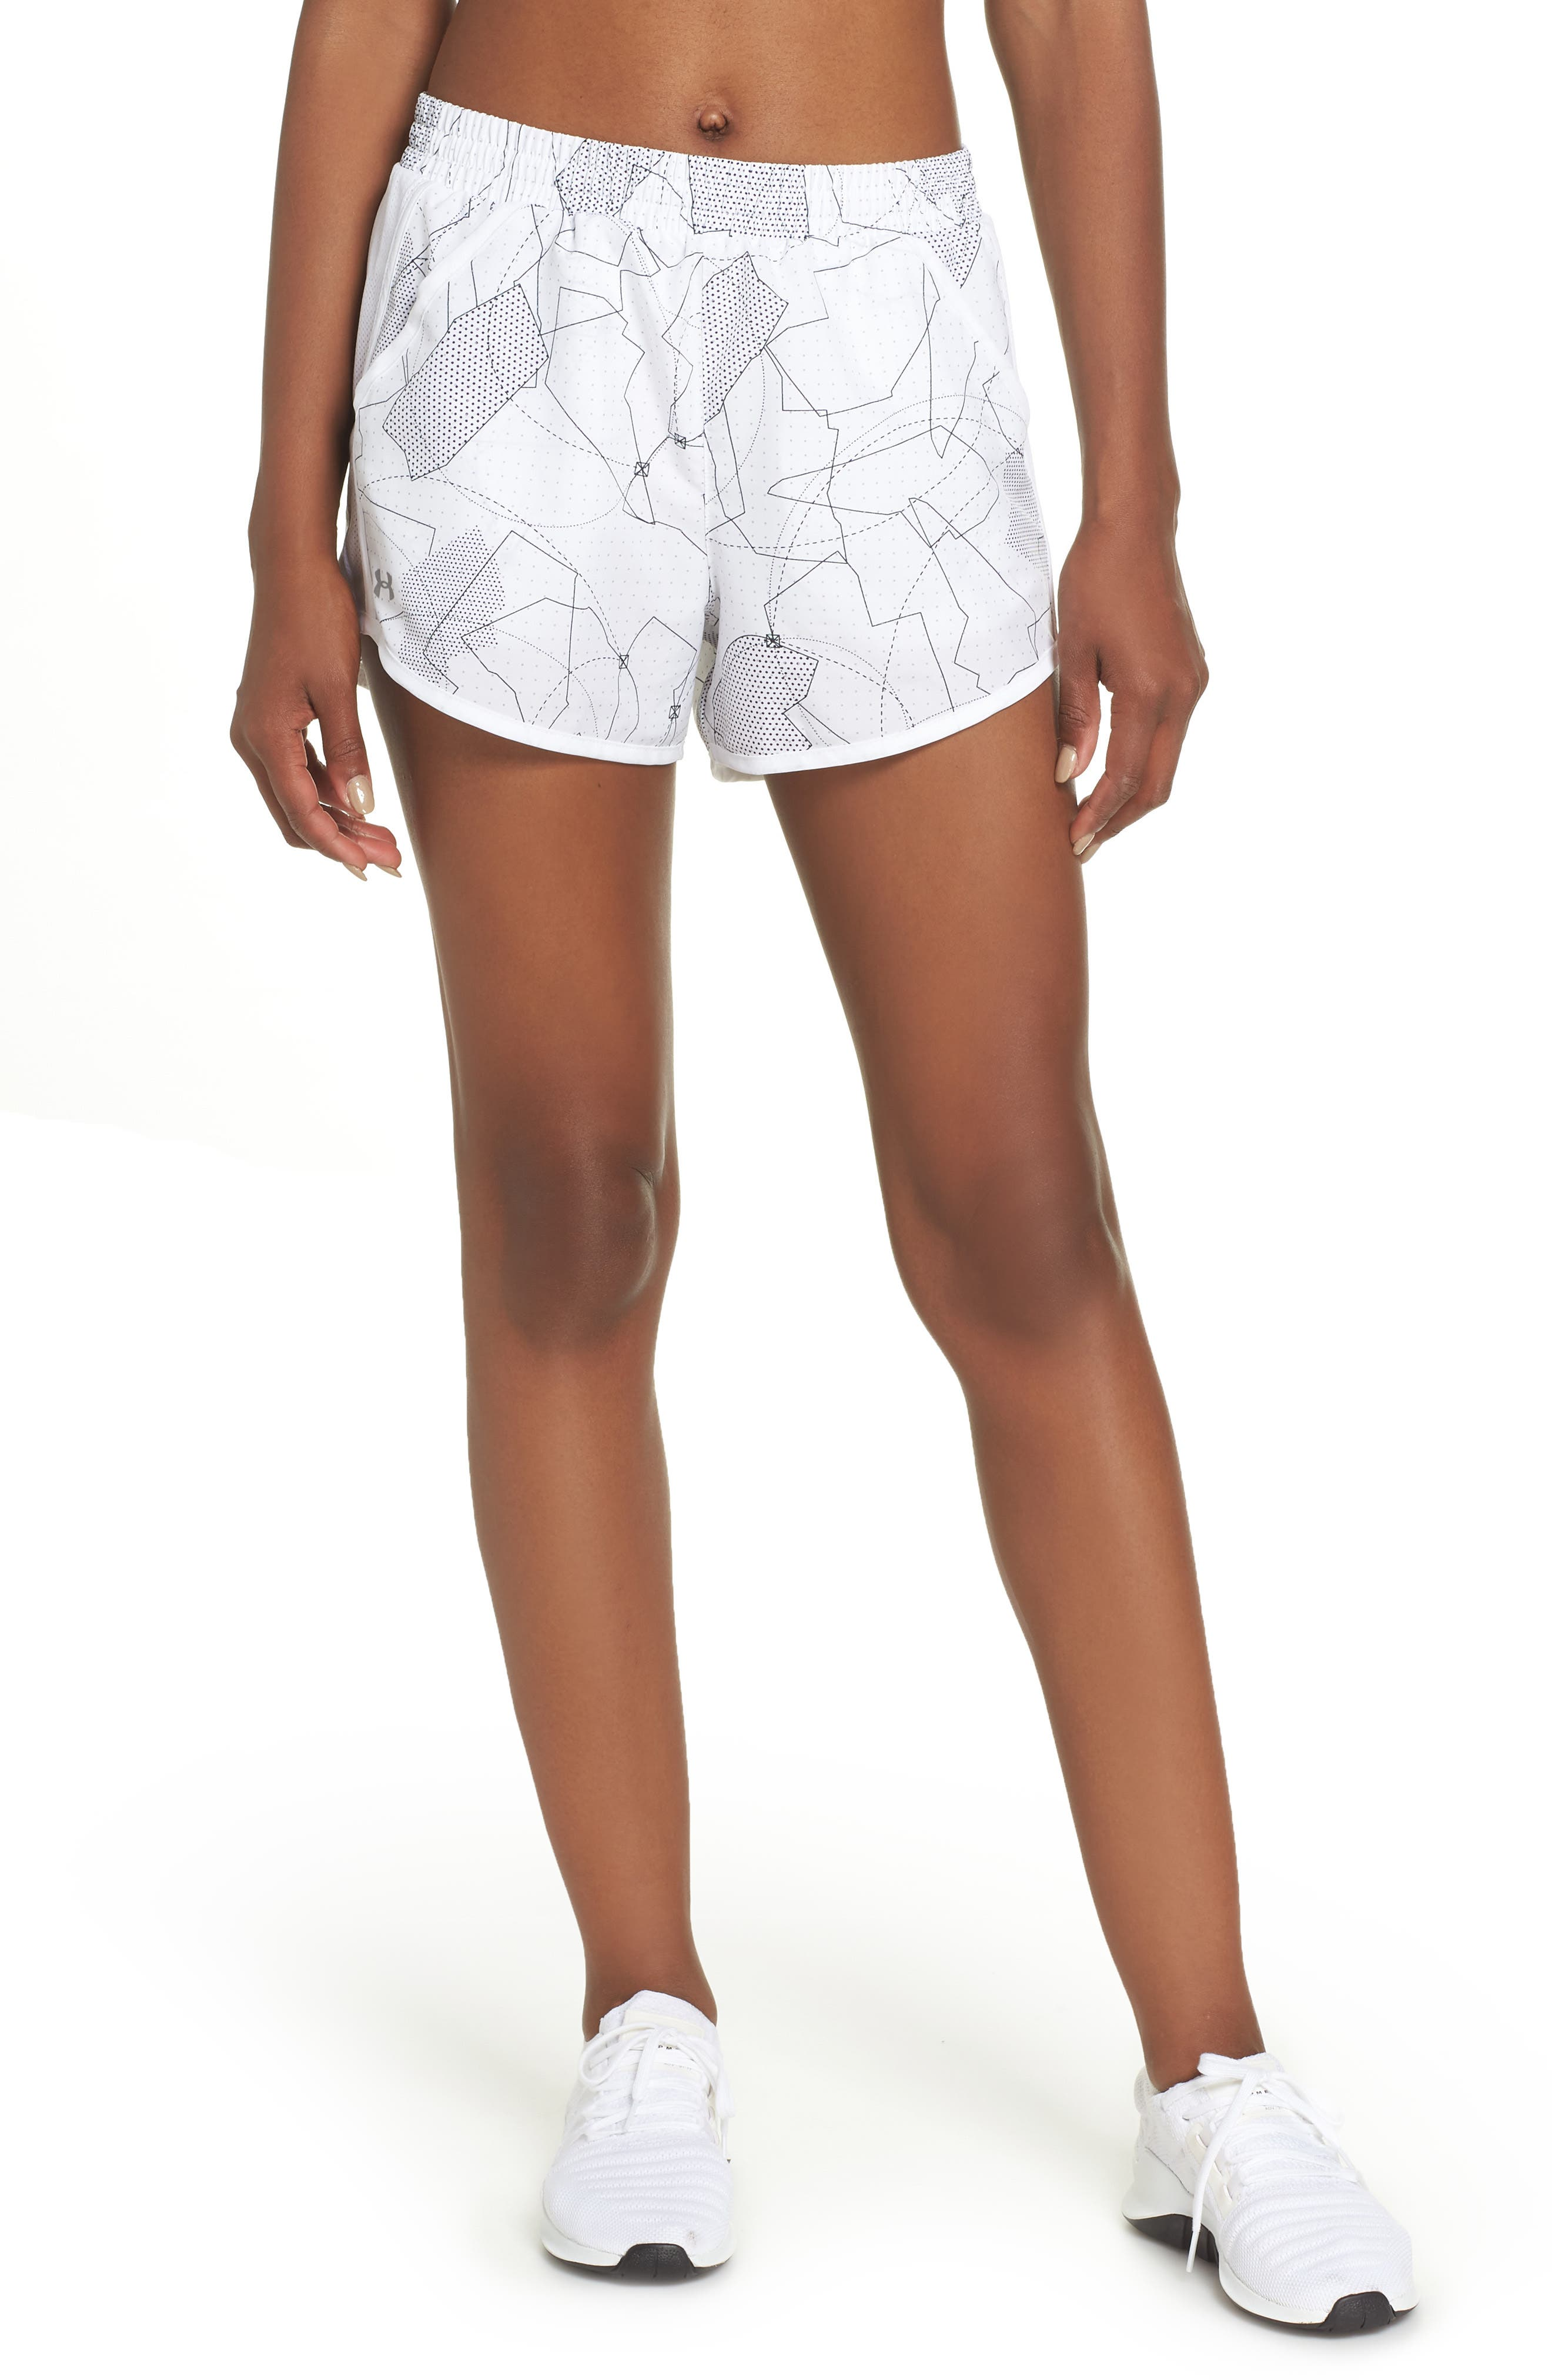 Fly-By Print Shorts,                             Main thumbnail 1, color,                             White/ White/ Reflective